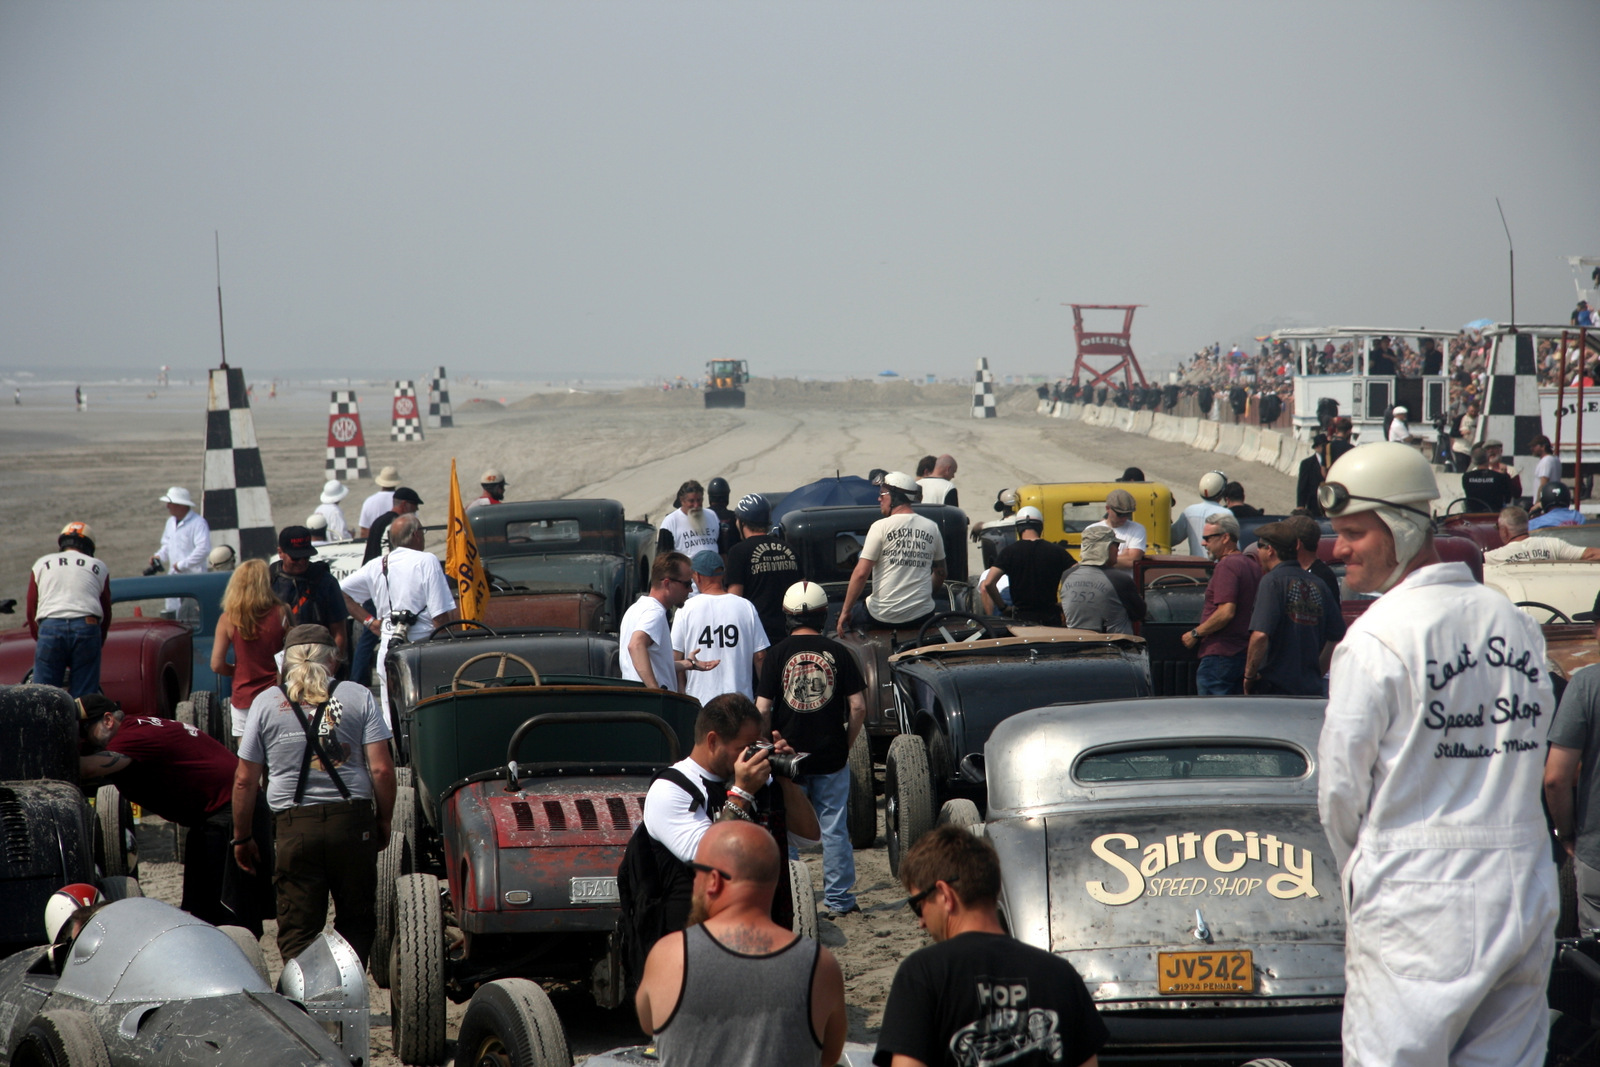 The Race of Gentlemen pits vintage hot rods and motorcycles against one another in head-to-head eighth-mile drag races on the beach at Wildwood, N.J.